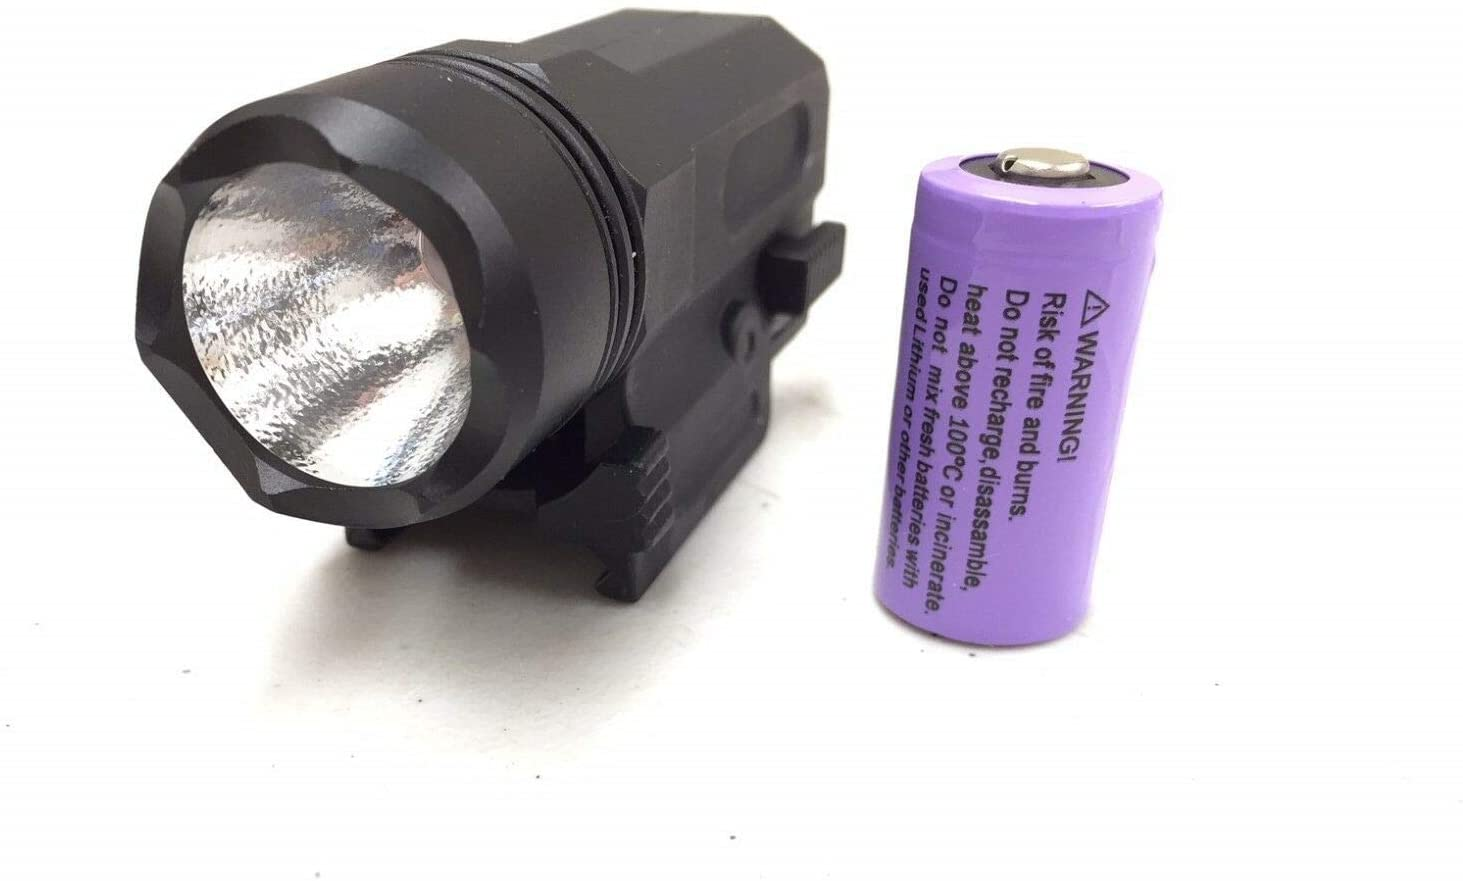 GOTICAL Quick Release Compact 200 Lumen Flashlight w/Battery Included